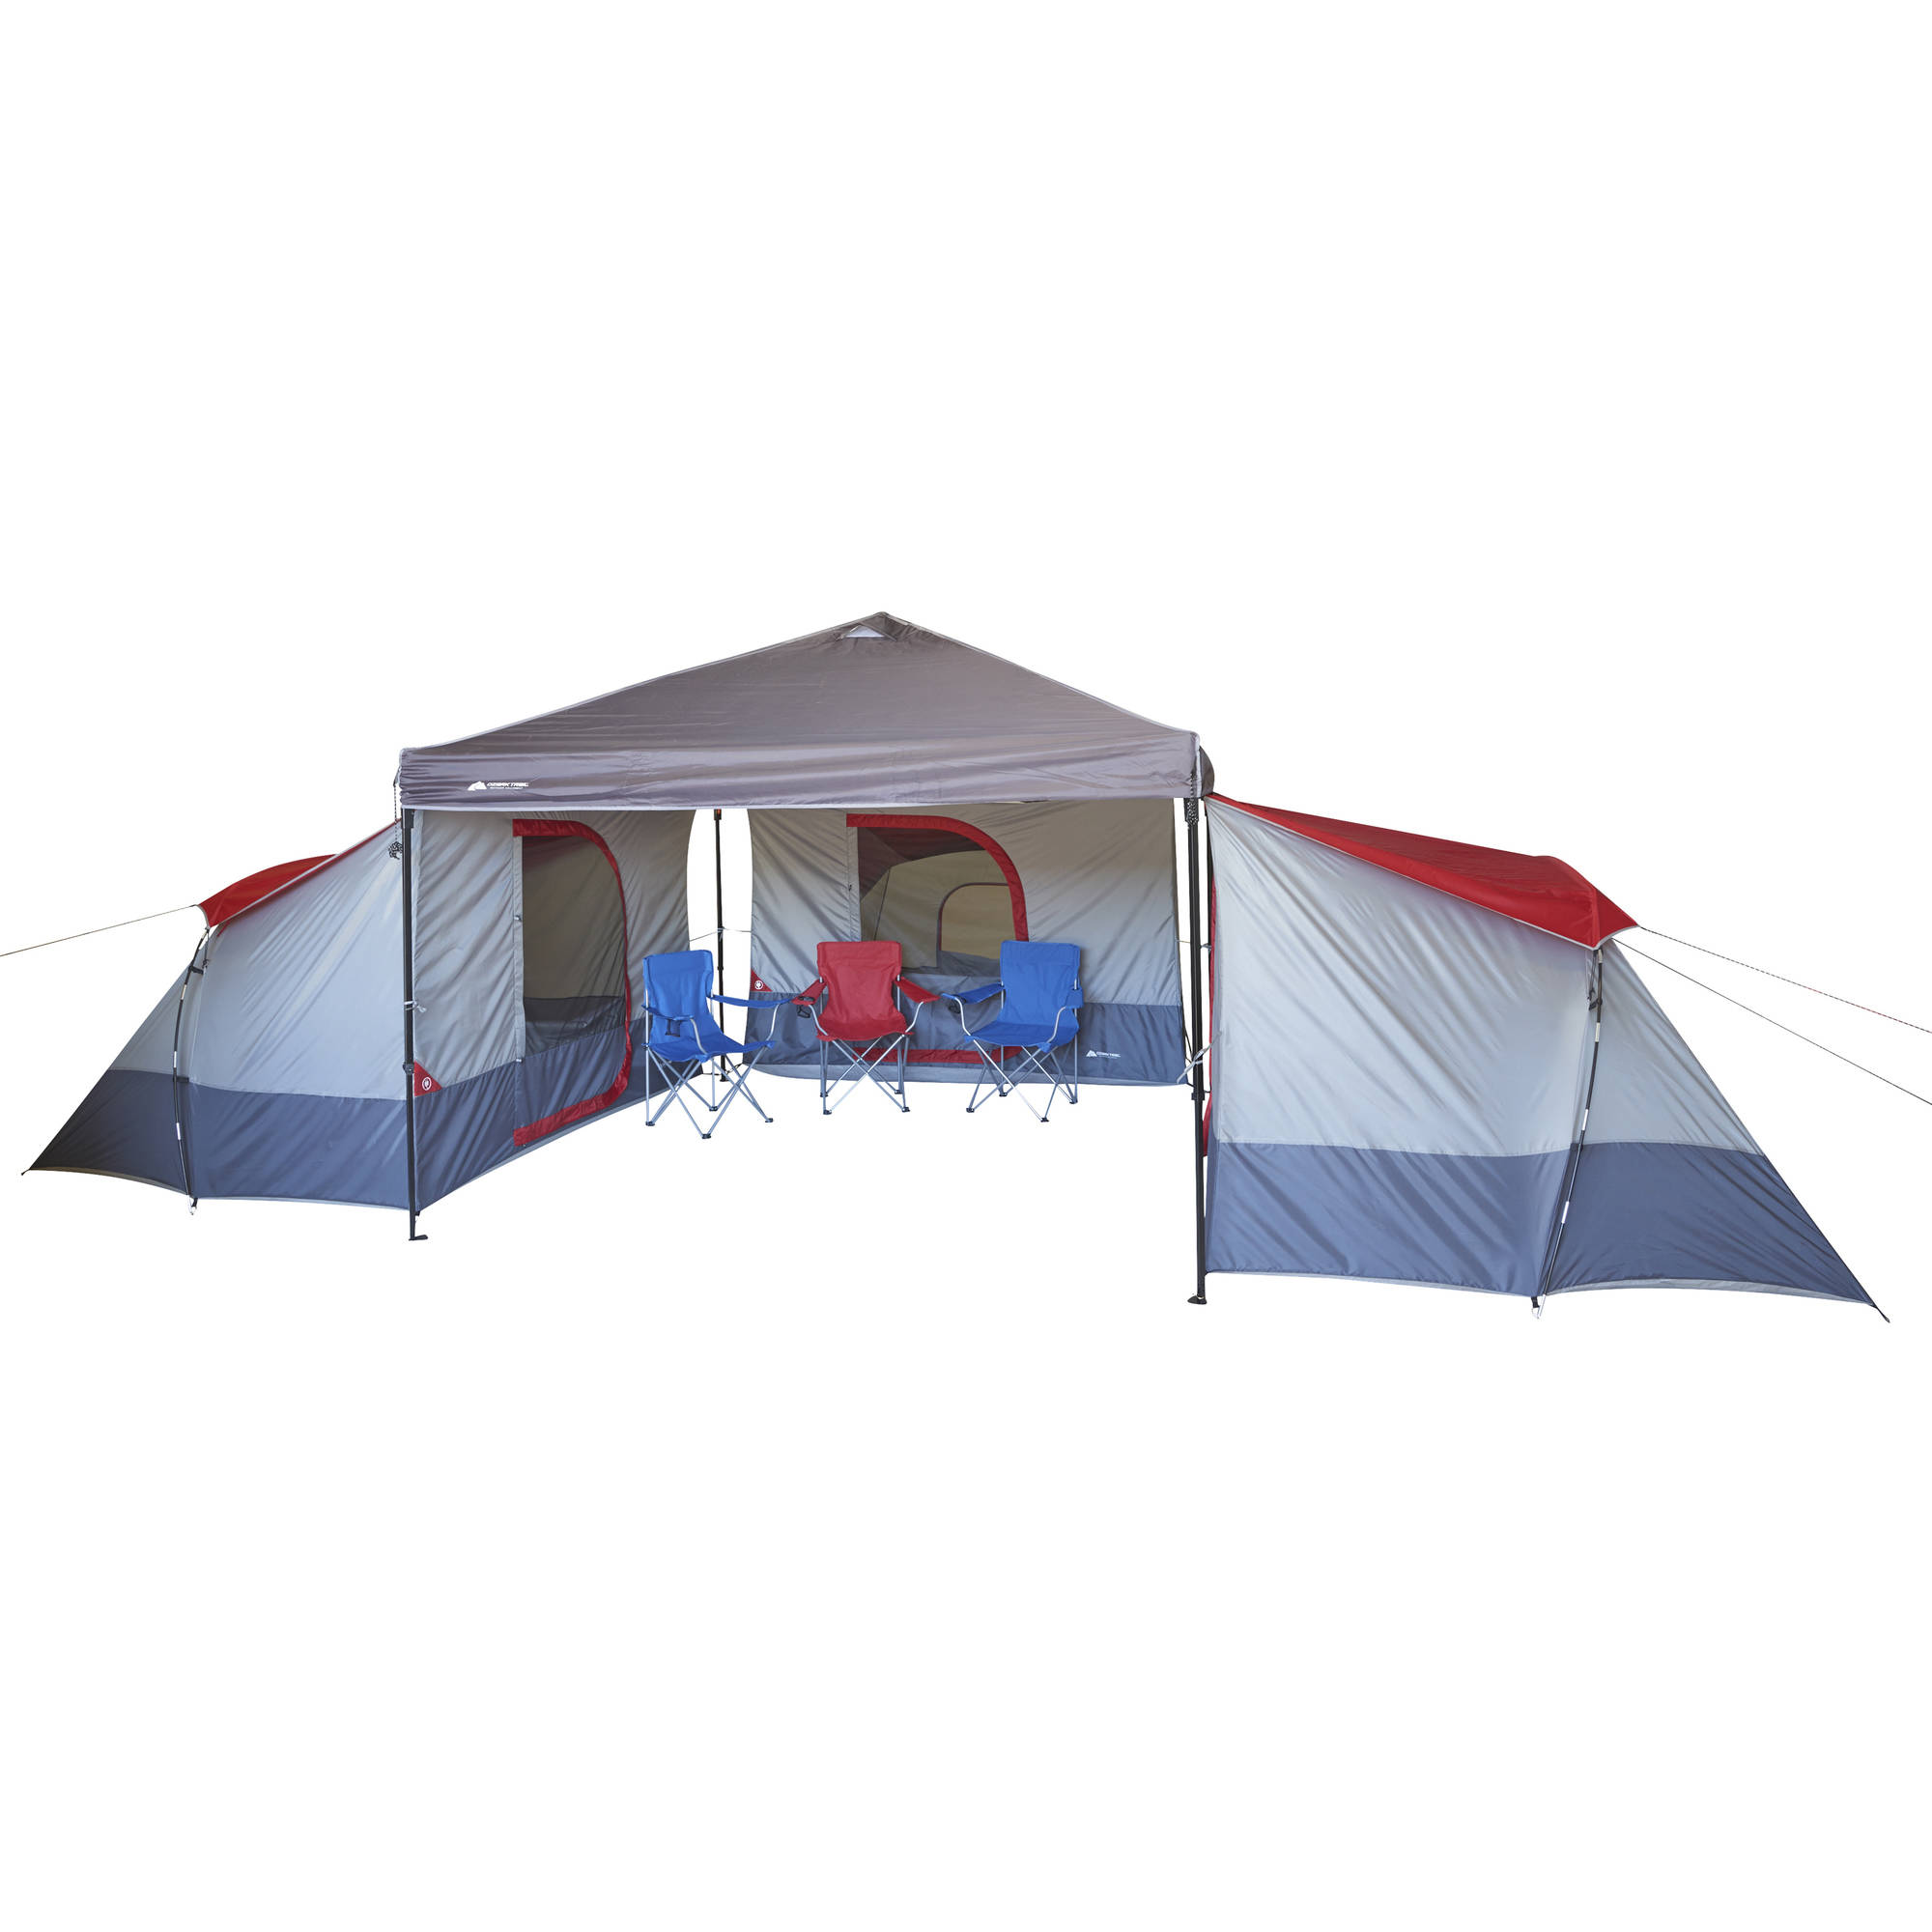 Garage Awning Extension Ozark Trail 4 Person 9 X 7 Ft Connectent For Straight Leg Canopy